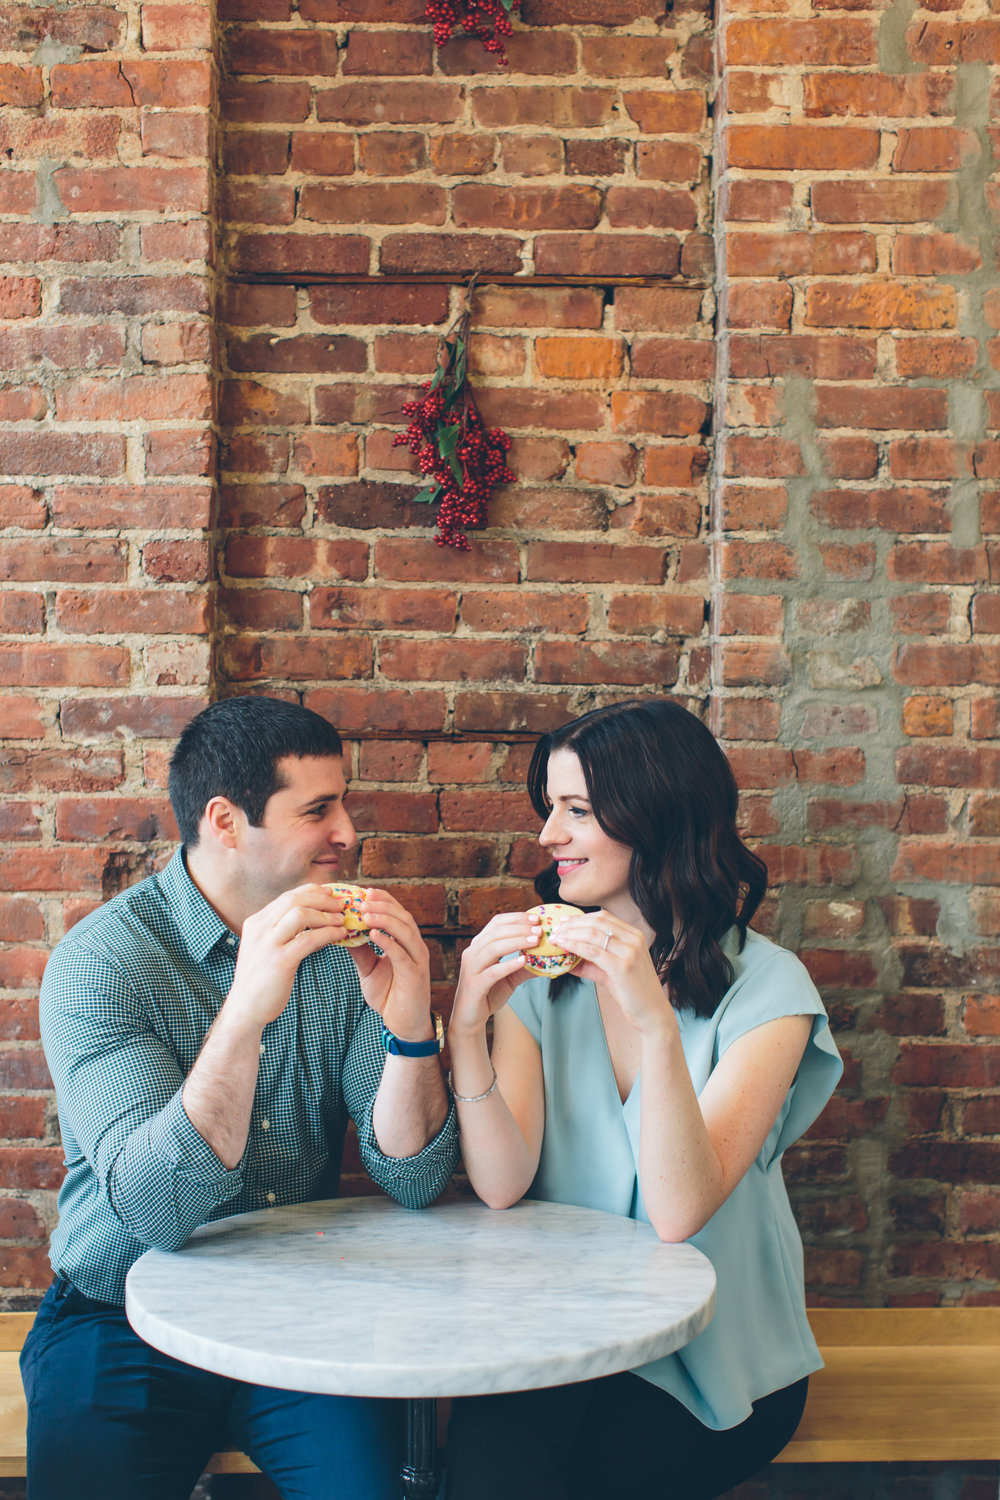 VICTORIA-BRIAN-BROOKLYN-NYC-ENGAGEMENT-SESSION-CYNTHIACHUNG-0058.jpg